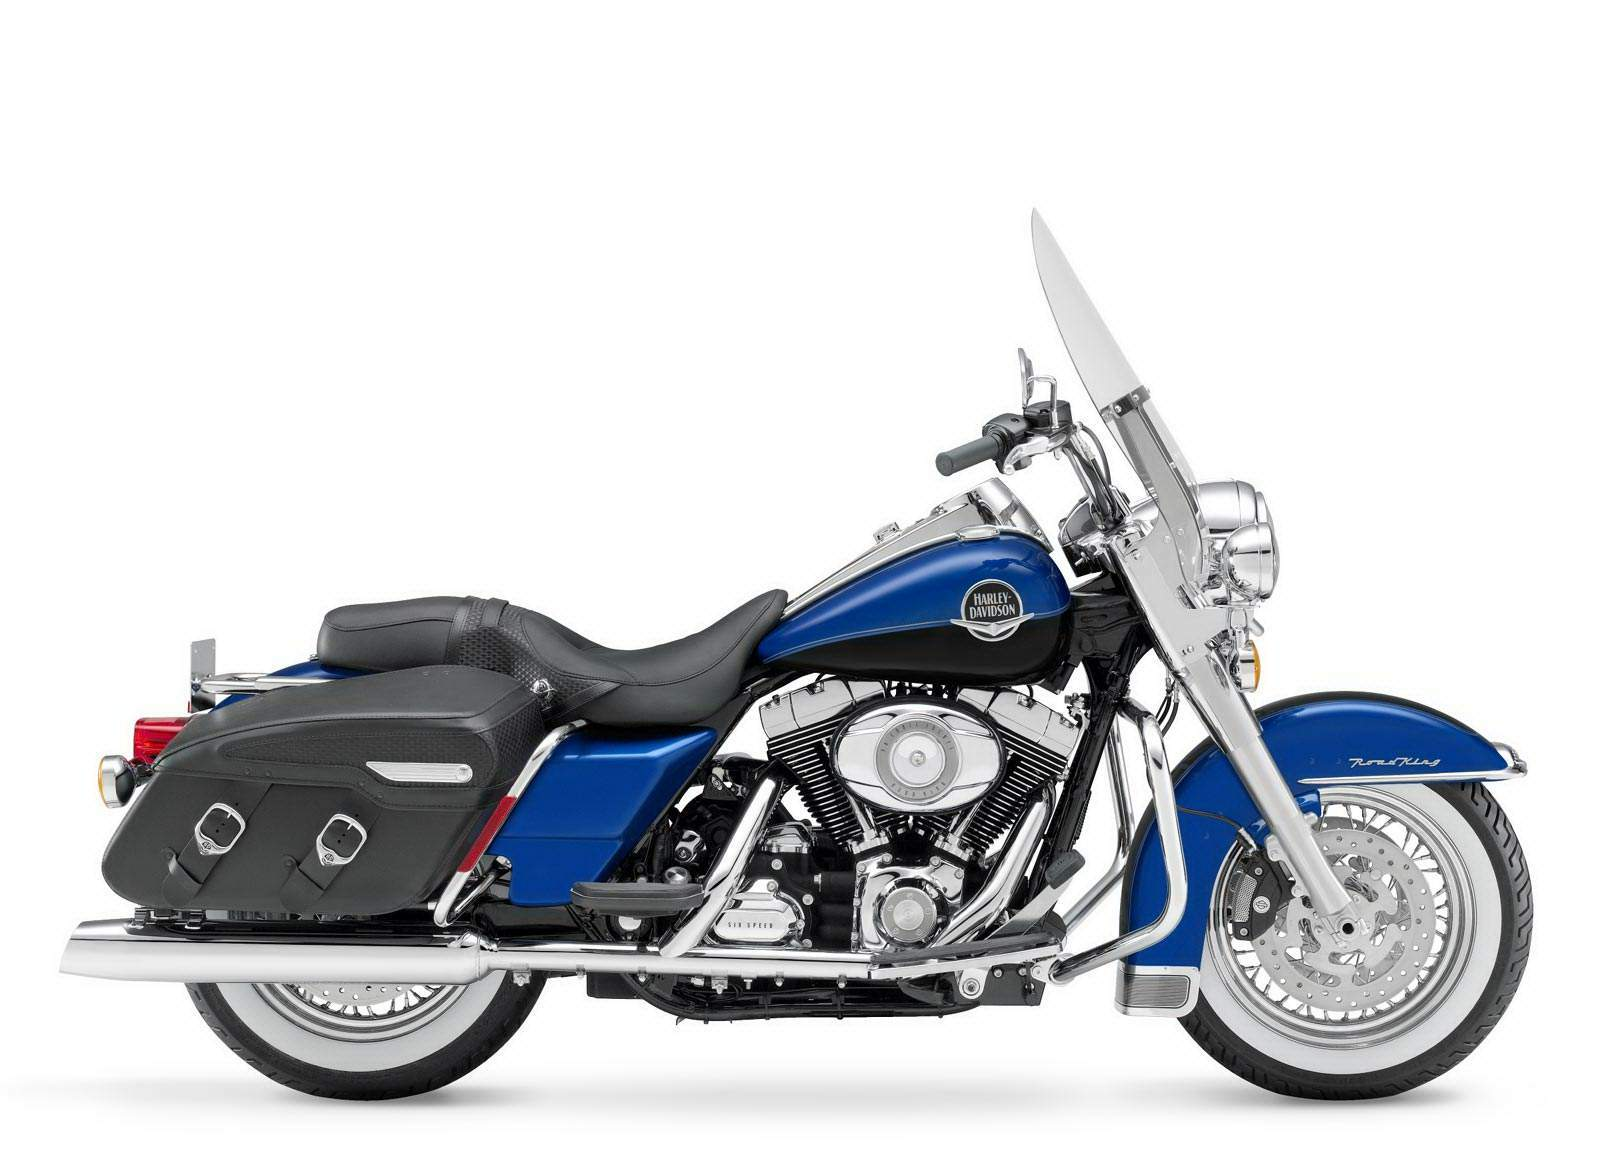 Harley-Davidson FLHRSE5 CVO Road King 110th Anniversary 2013 images #81630